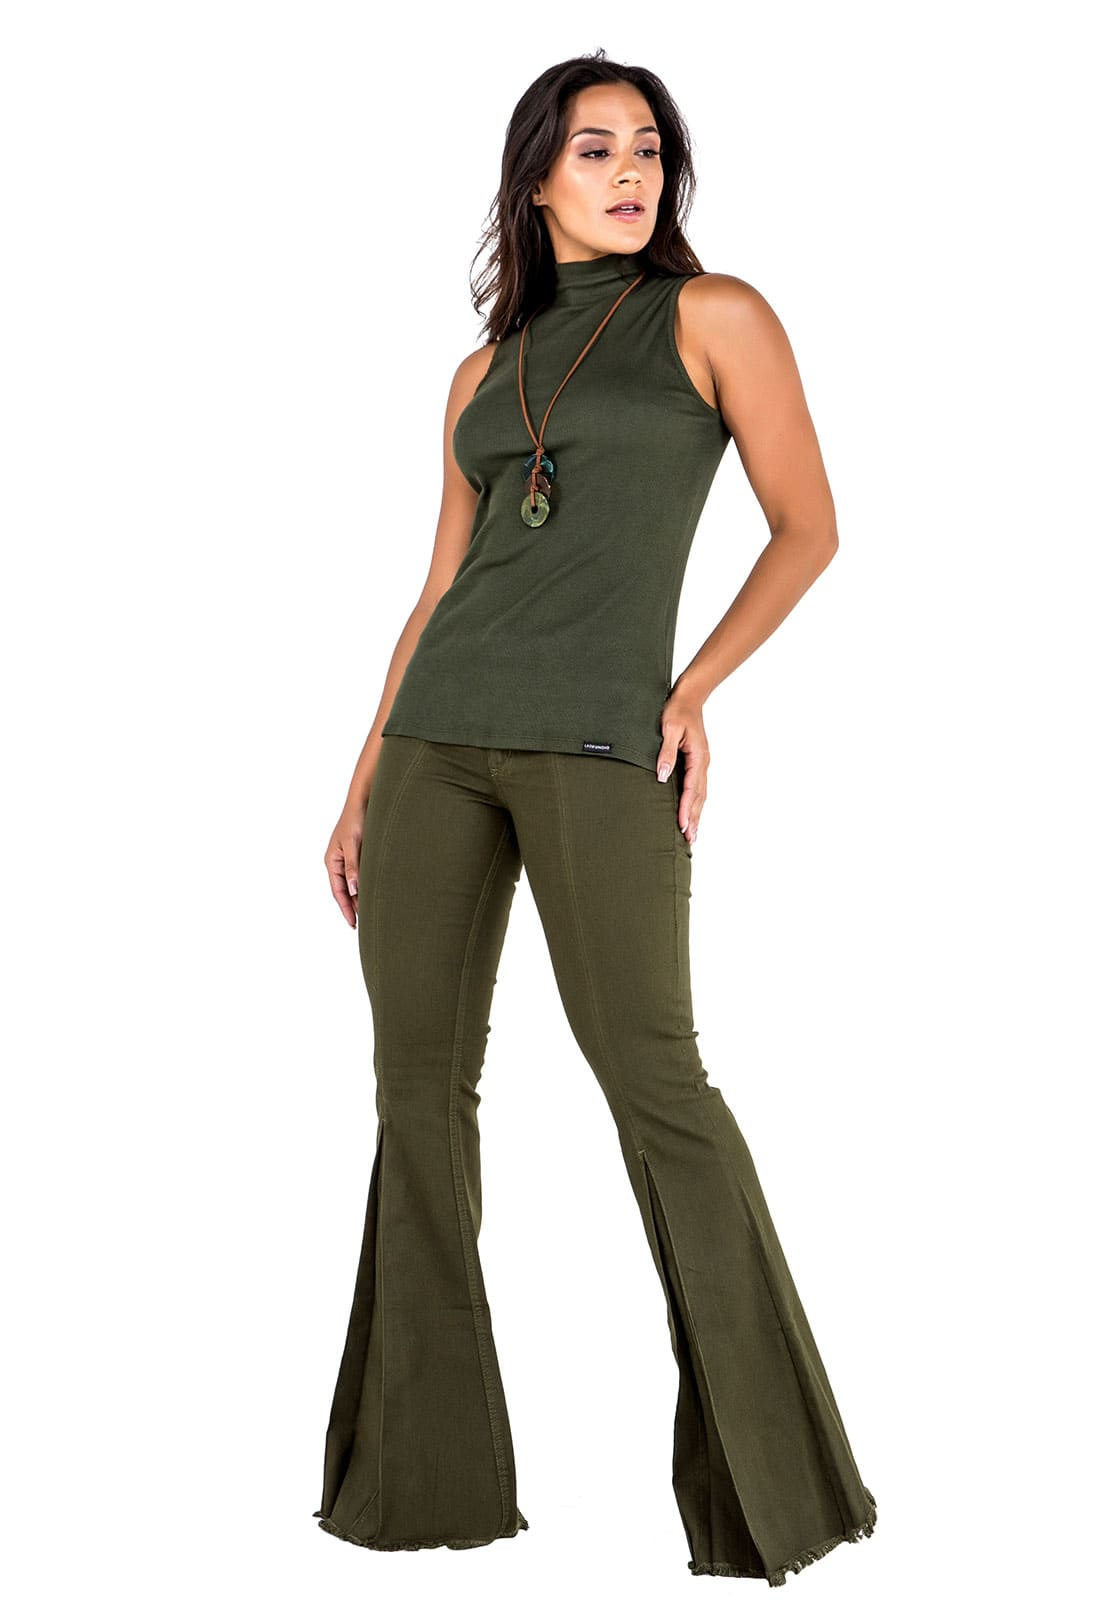 Look Must Have Verde Militar